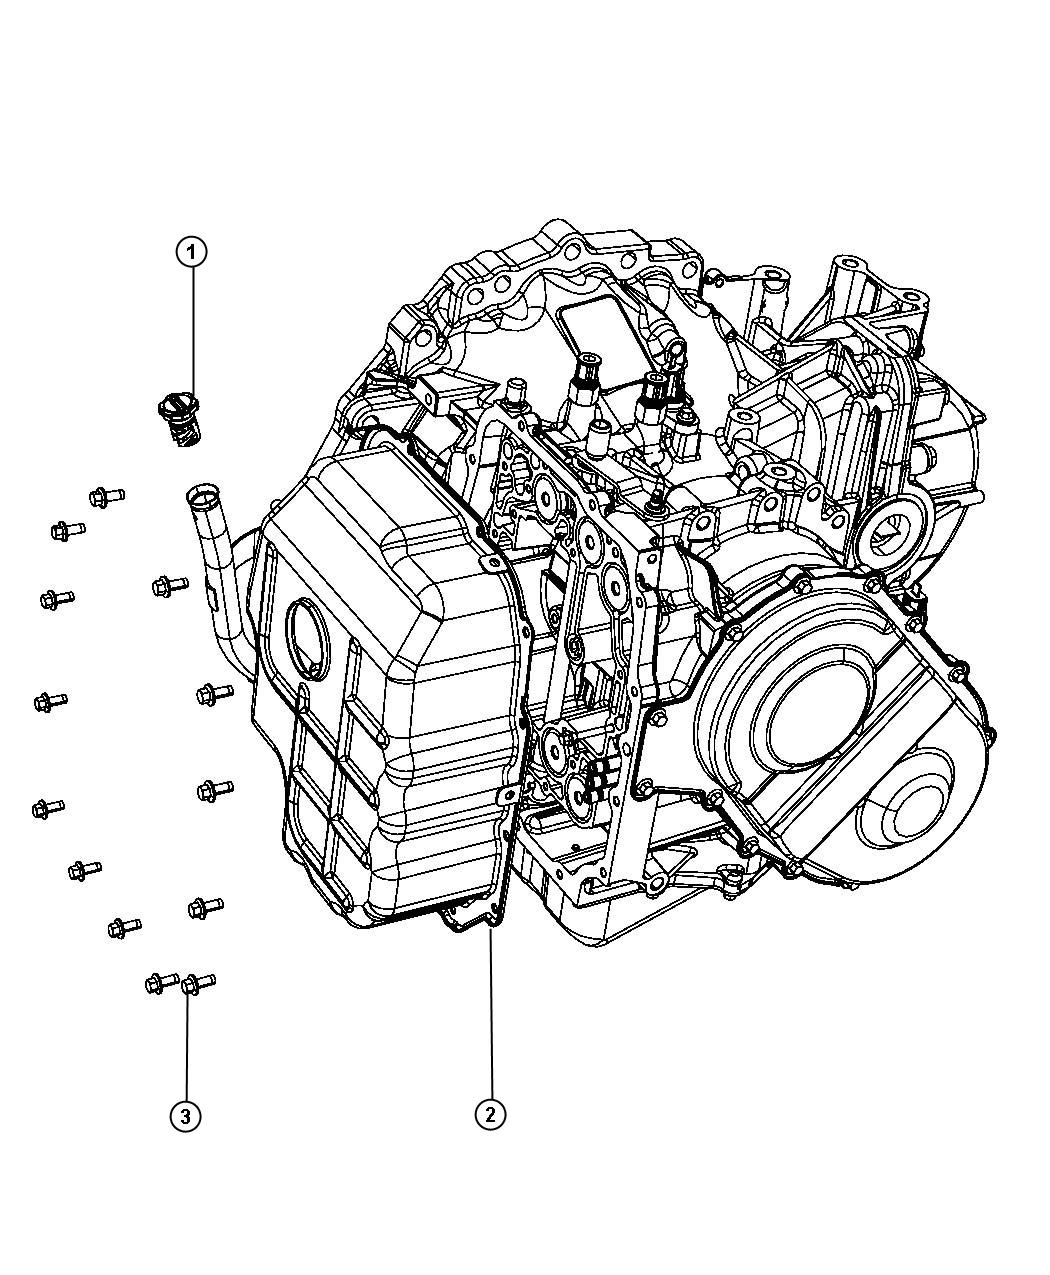 2007 equinox wiring diagrams